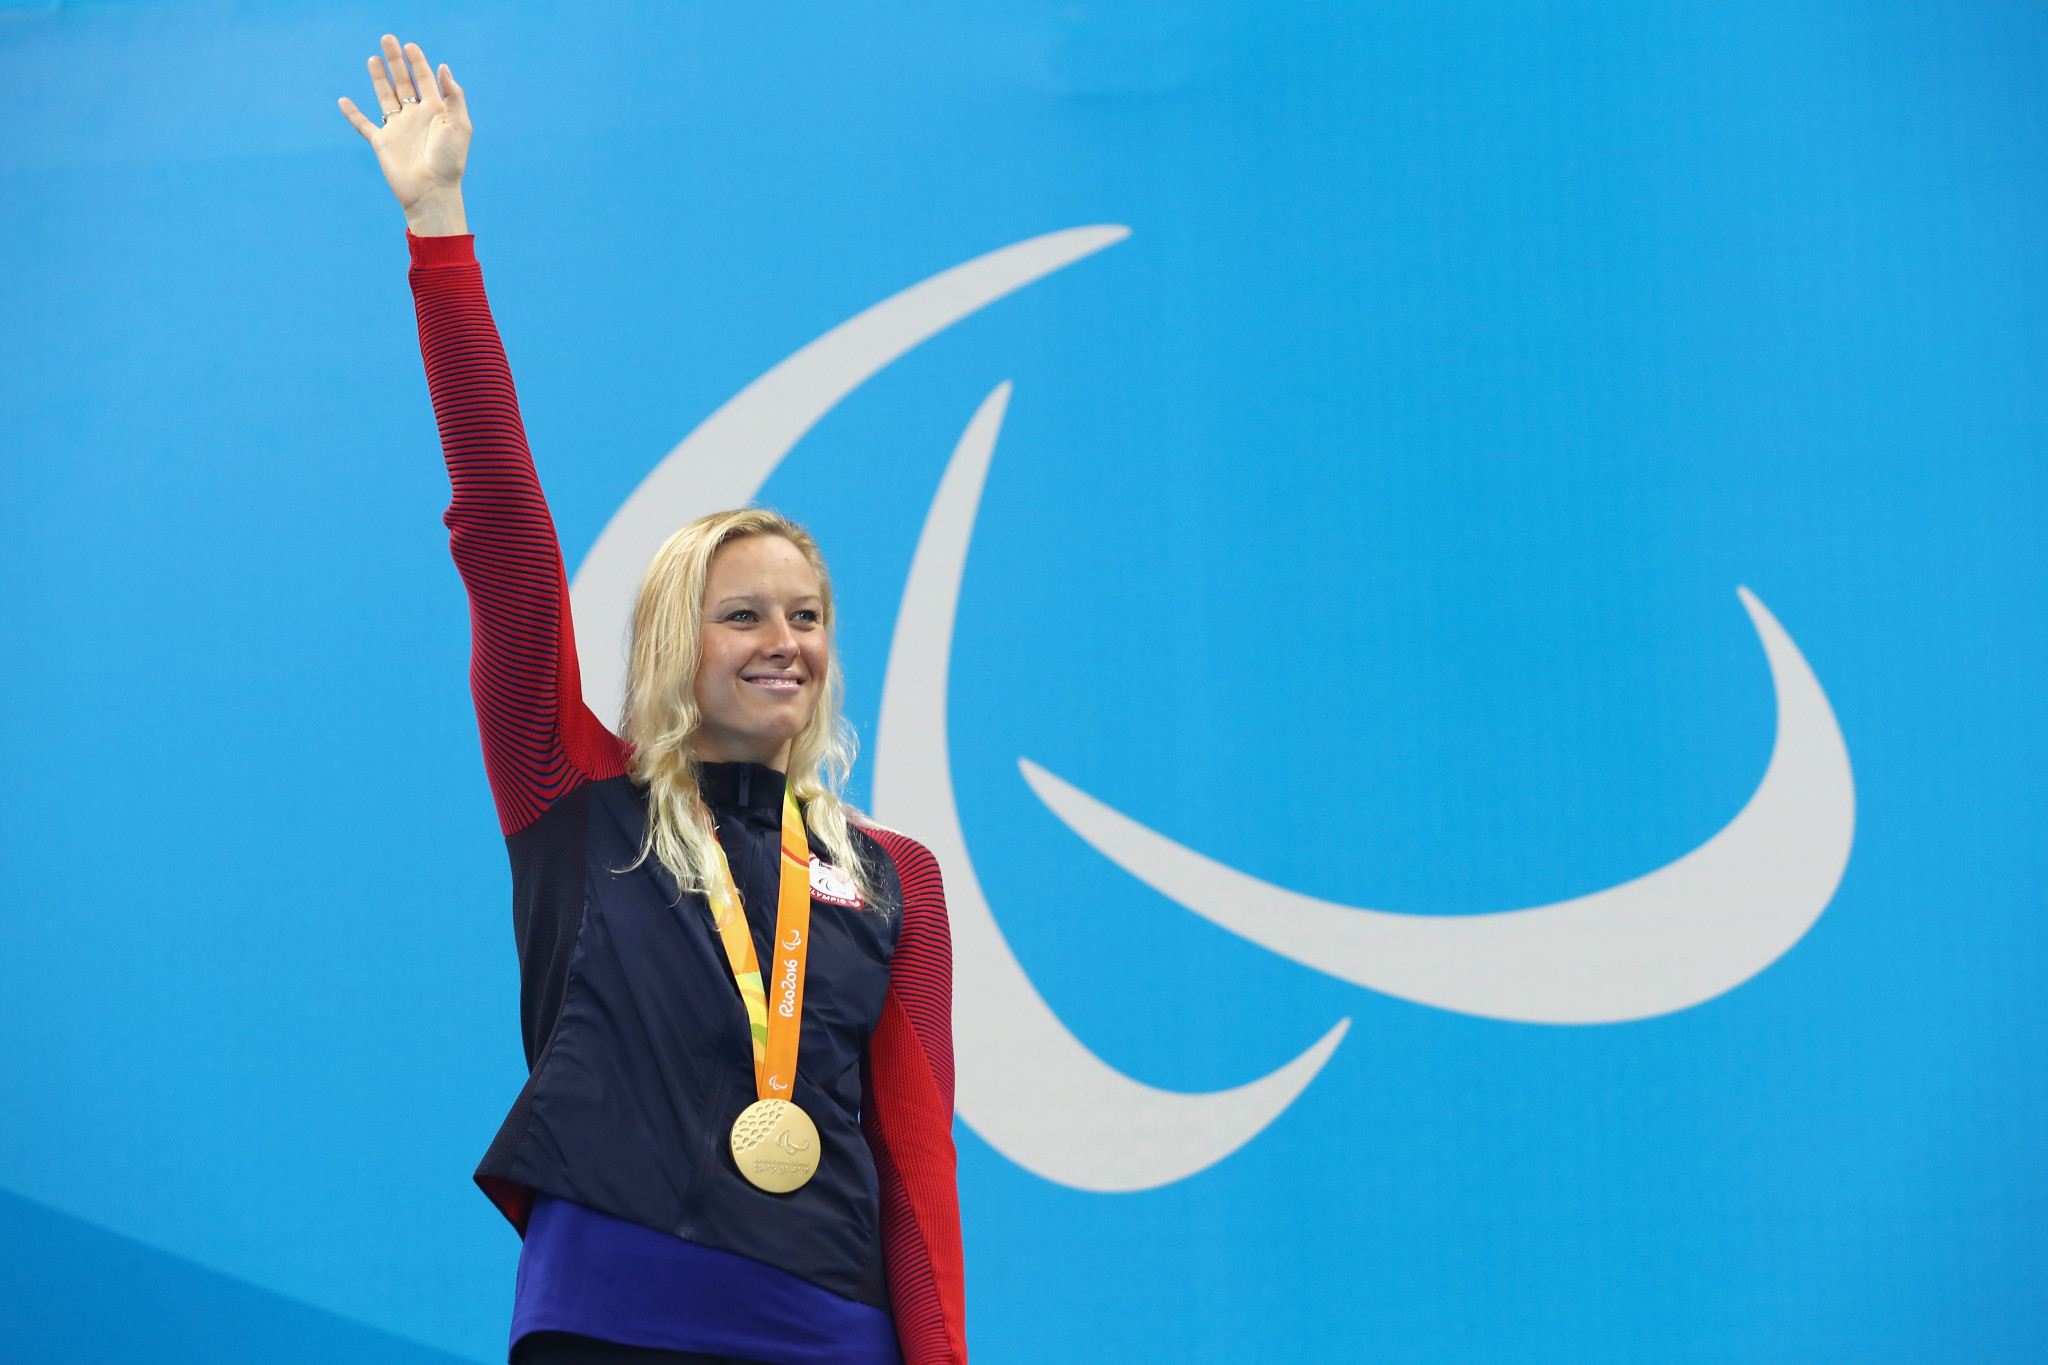 Paralympic champion Long calls for kindness after abuse for parking in handicap space